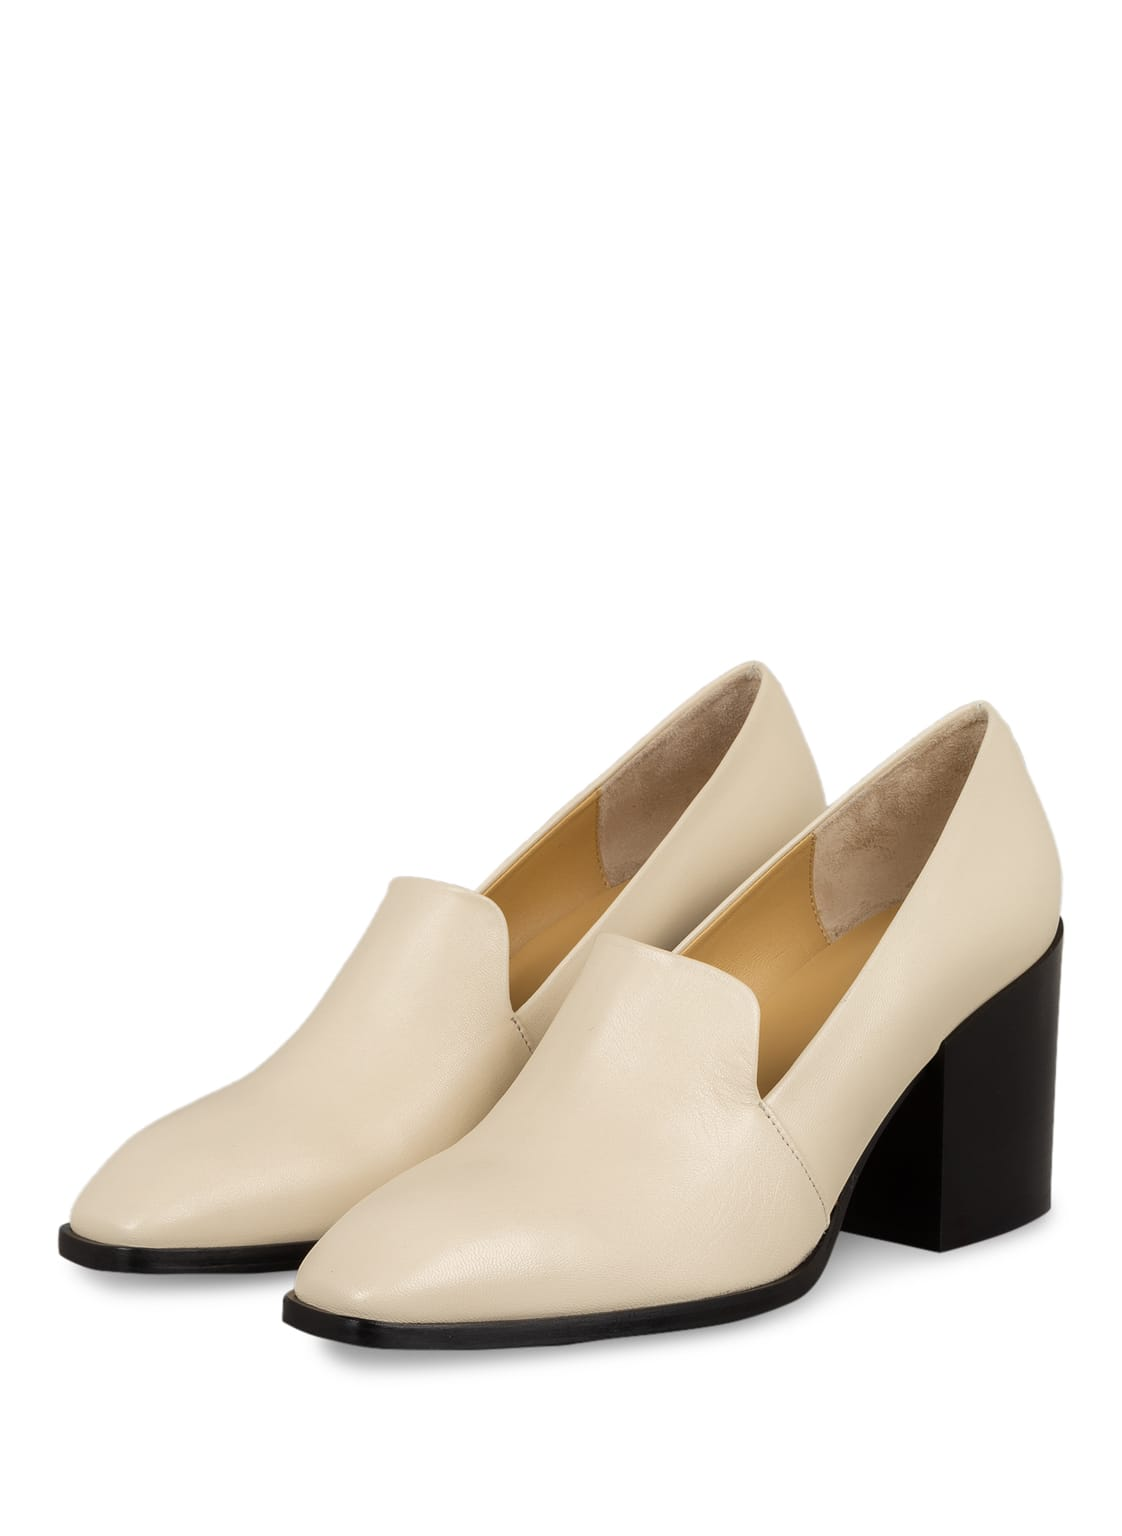 Image of Aeyde Pumps Allyson weiss